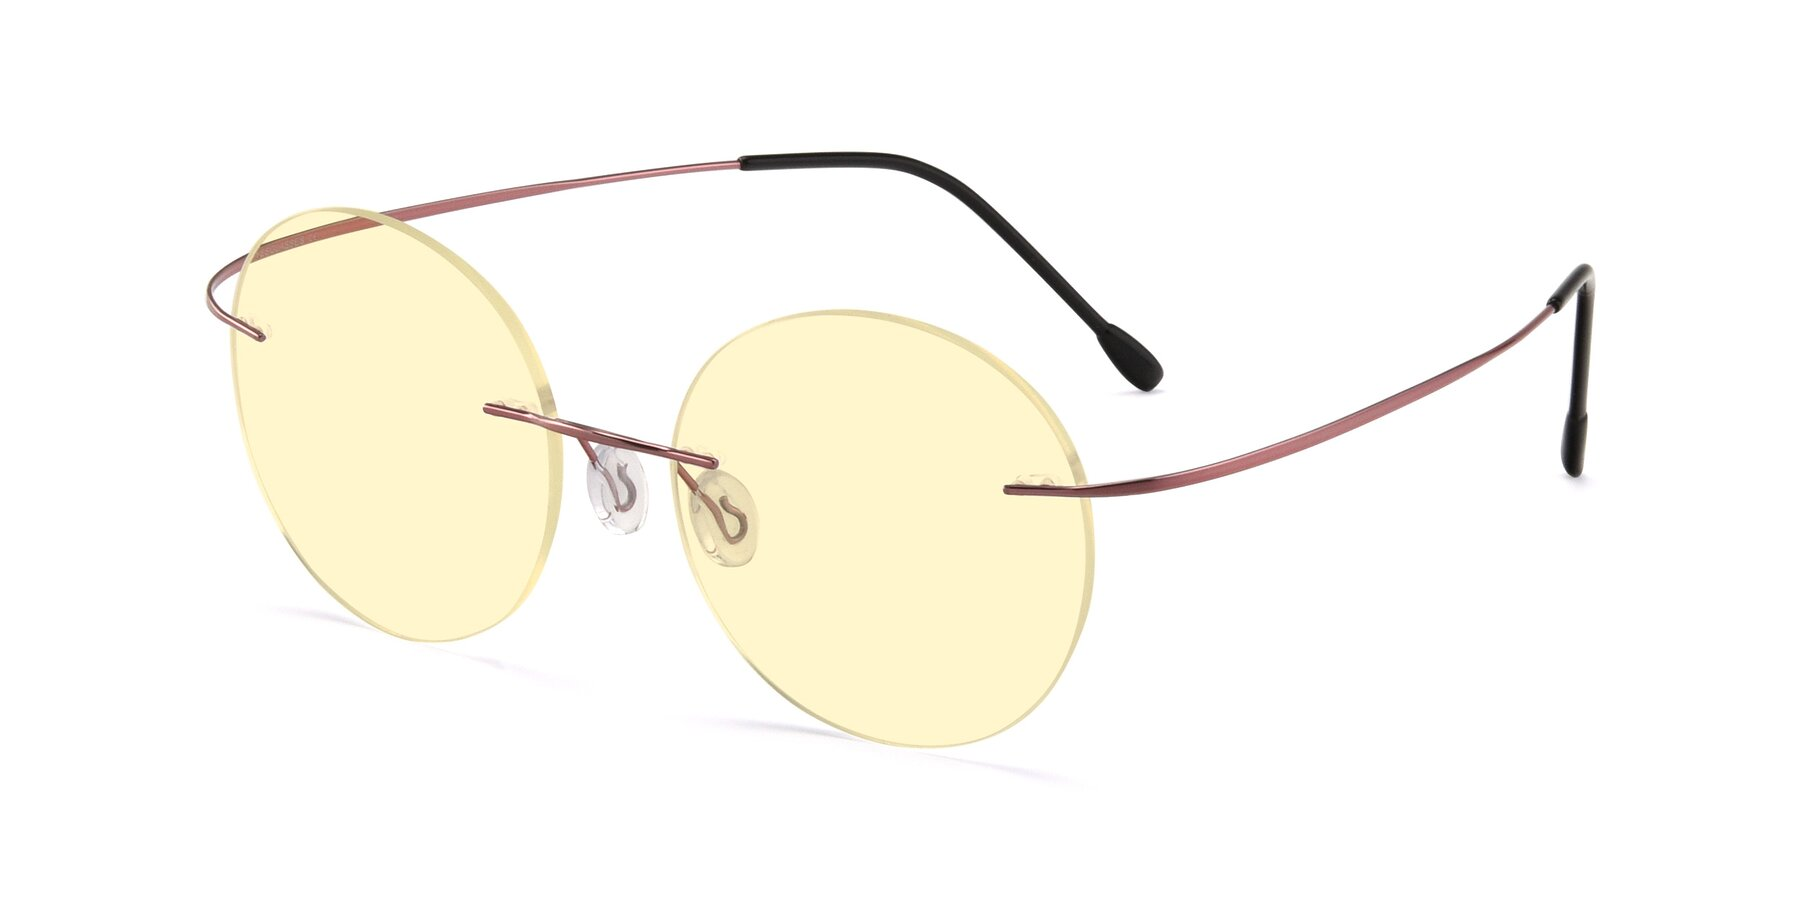 Angle of Leon in Light Pink with Light Yellow Tinted Lenses